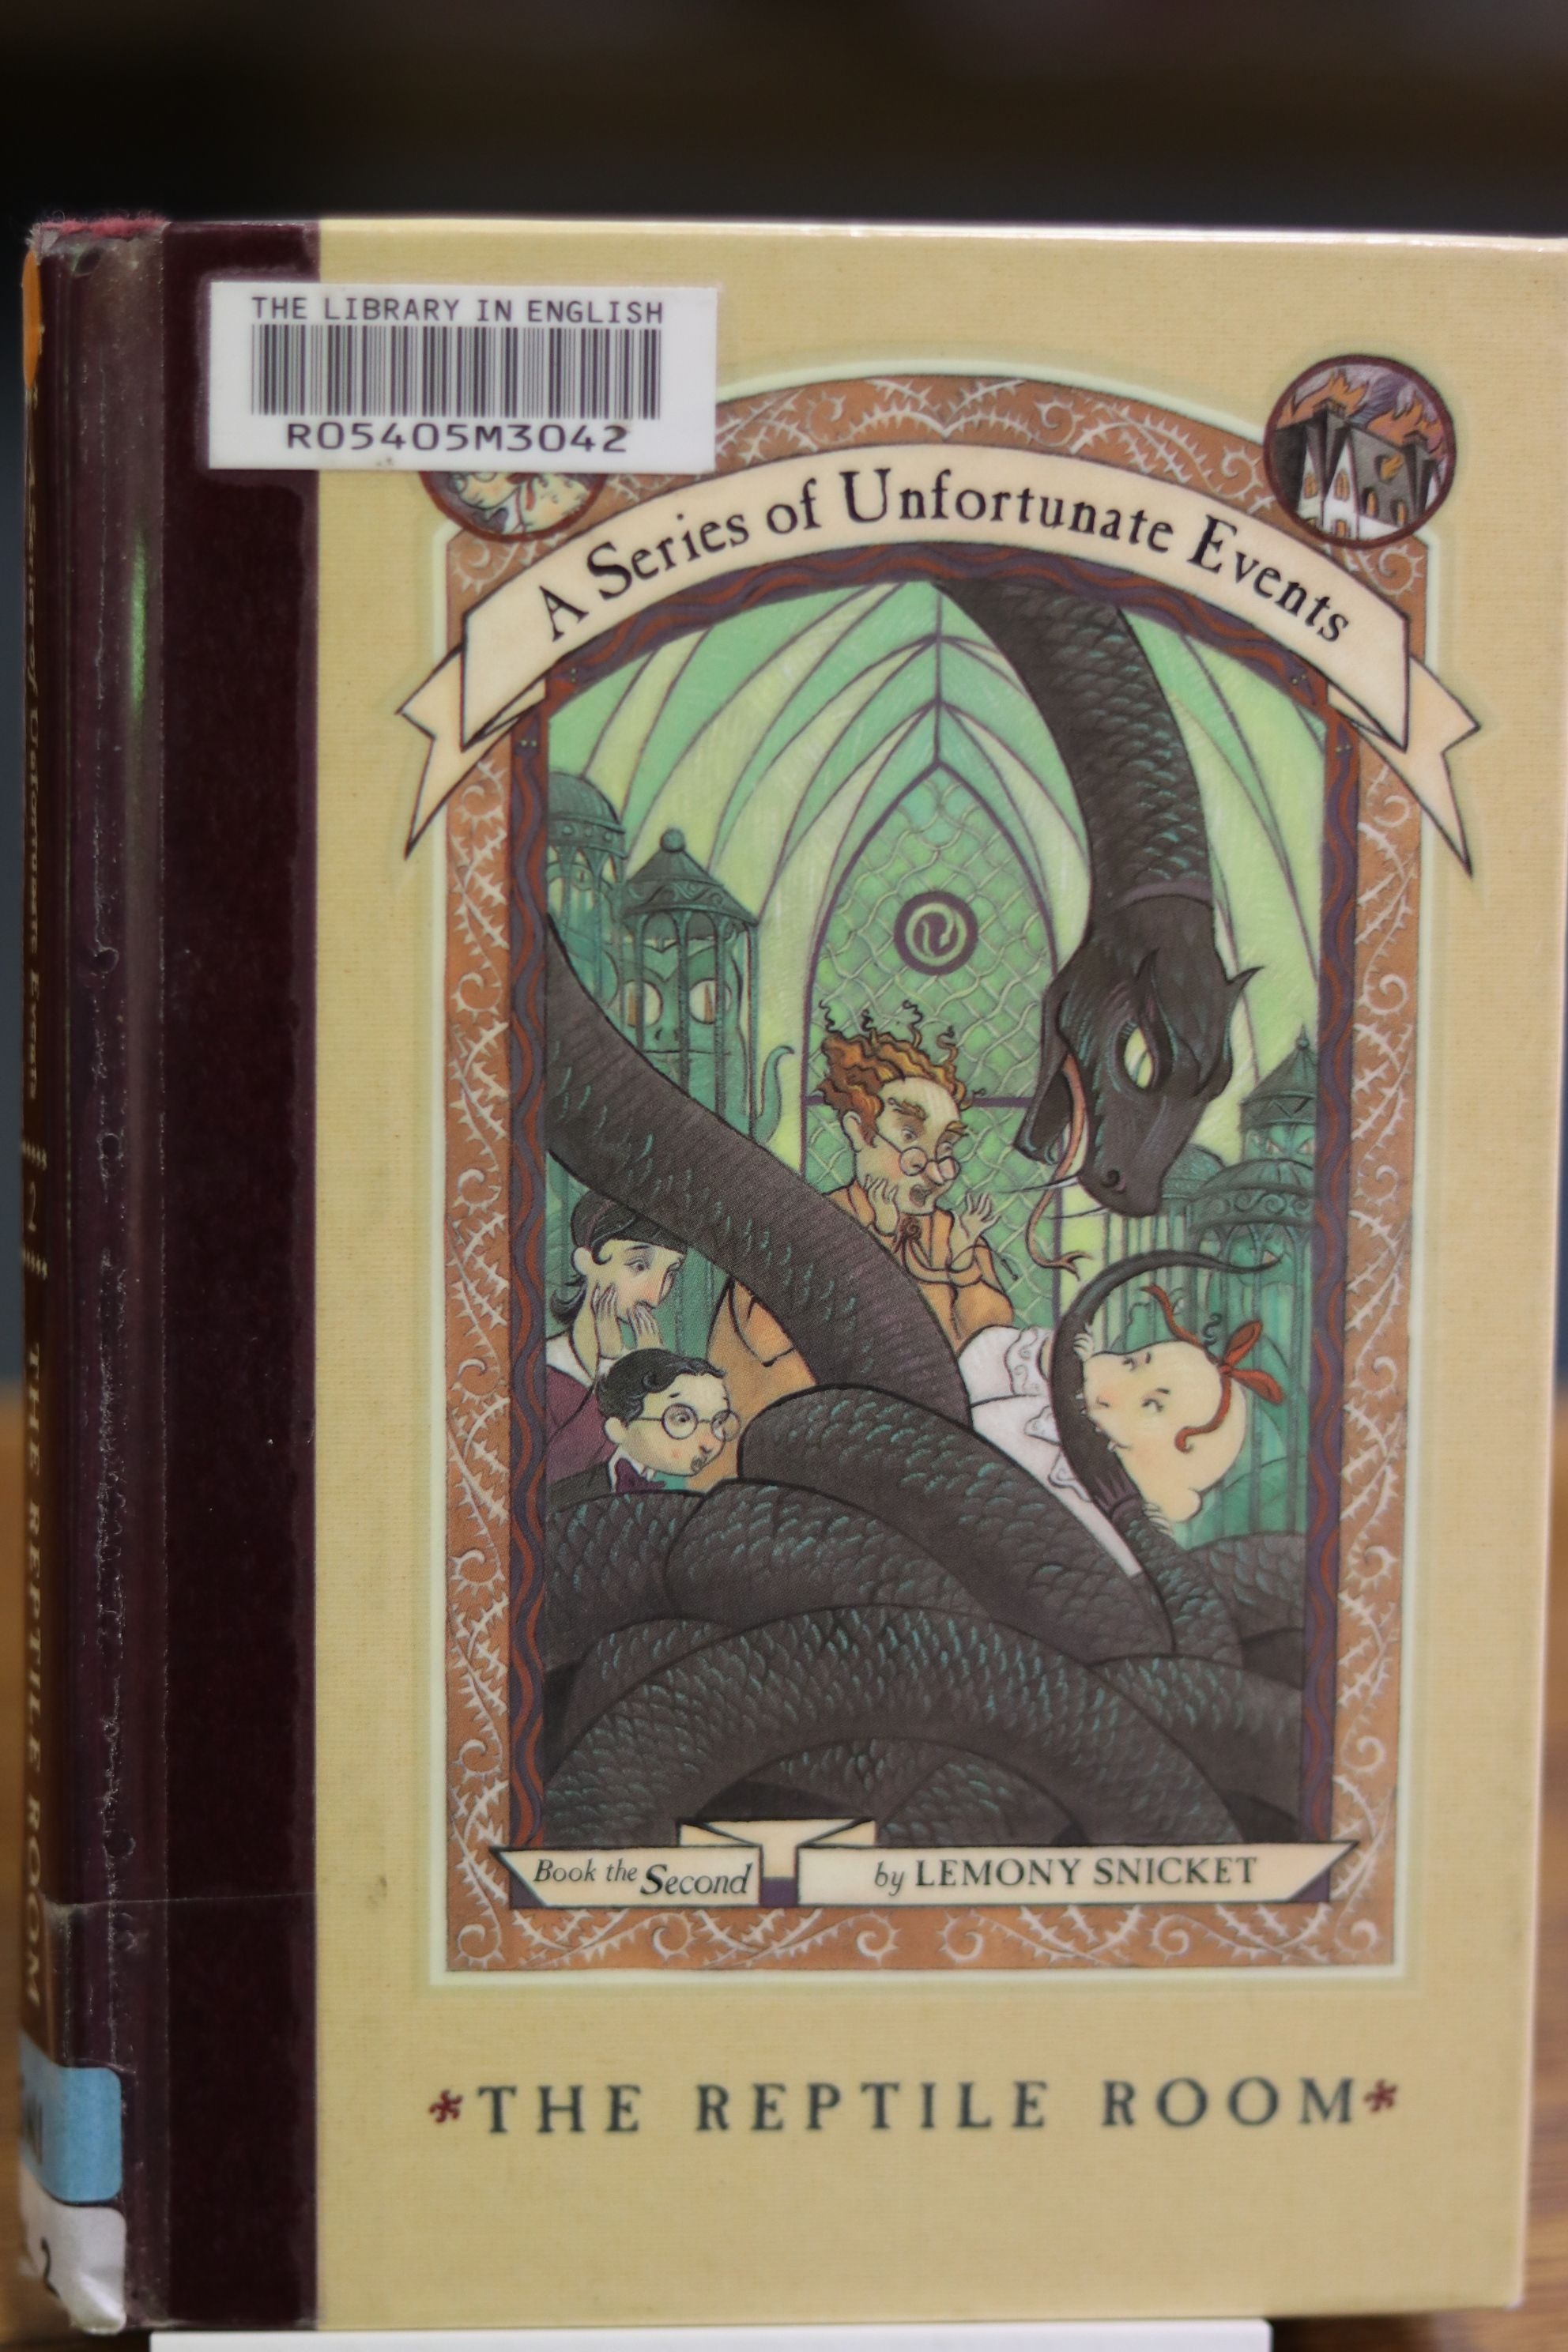 Lemony Snicket's A Series of Unfortunate Events, season